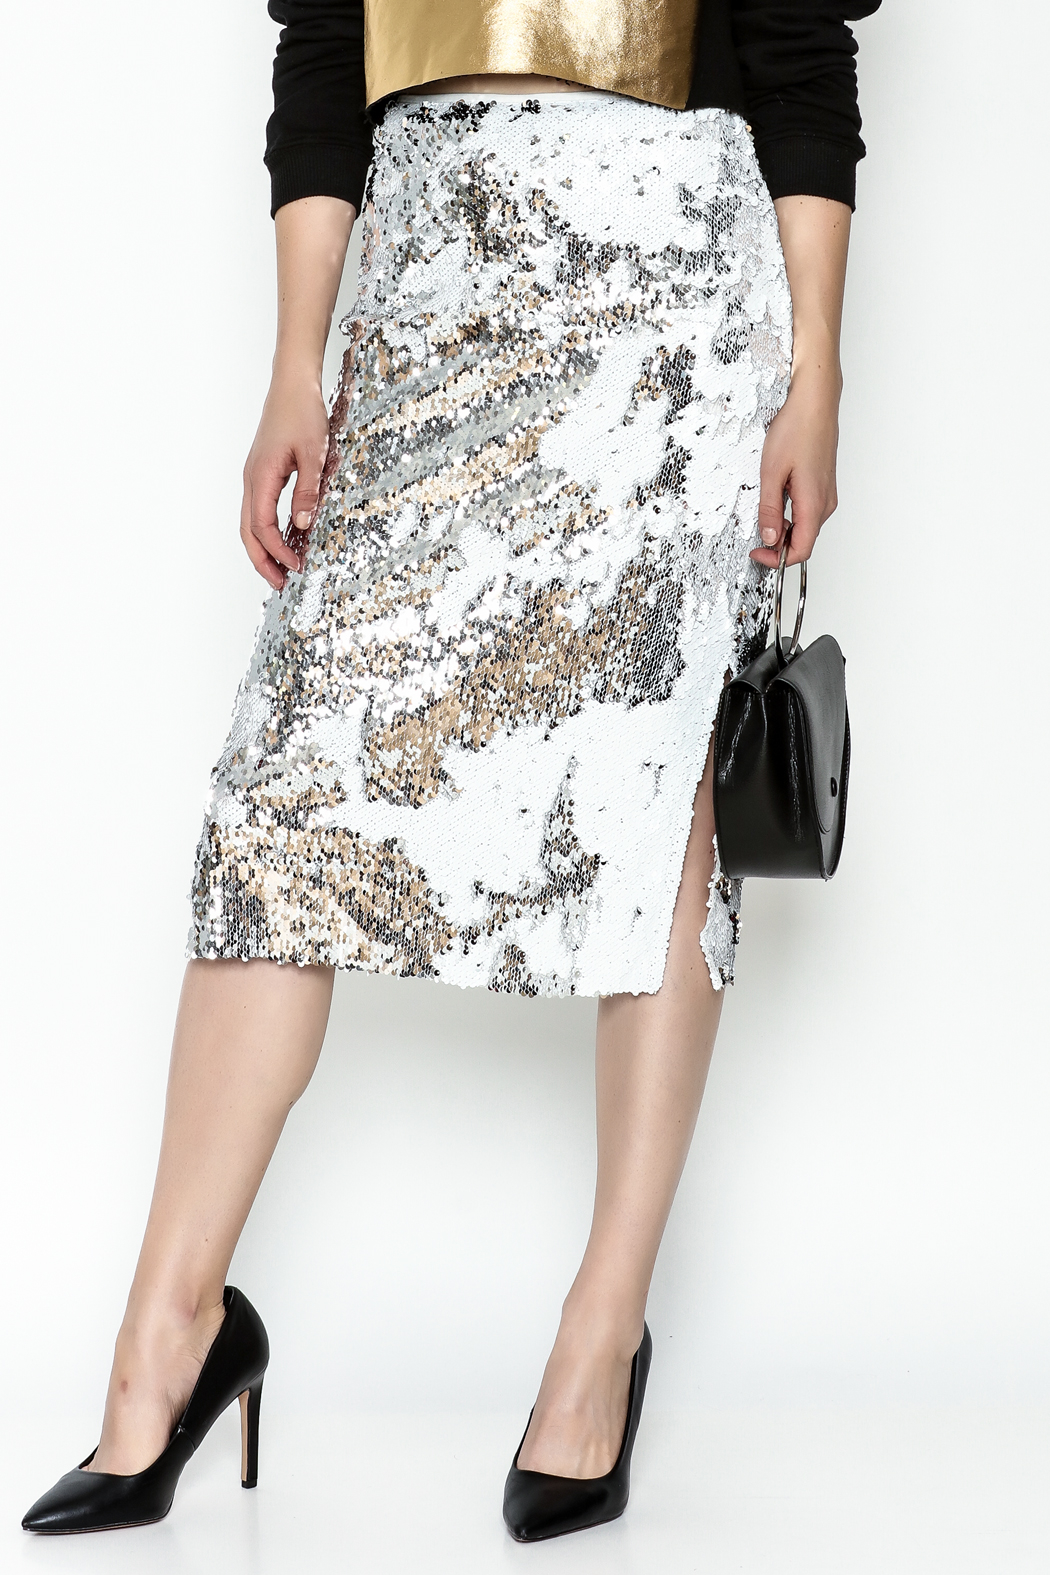 LIFTED Boutique Sequin Skirt - Main Image